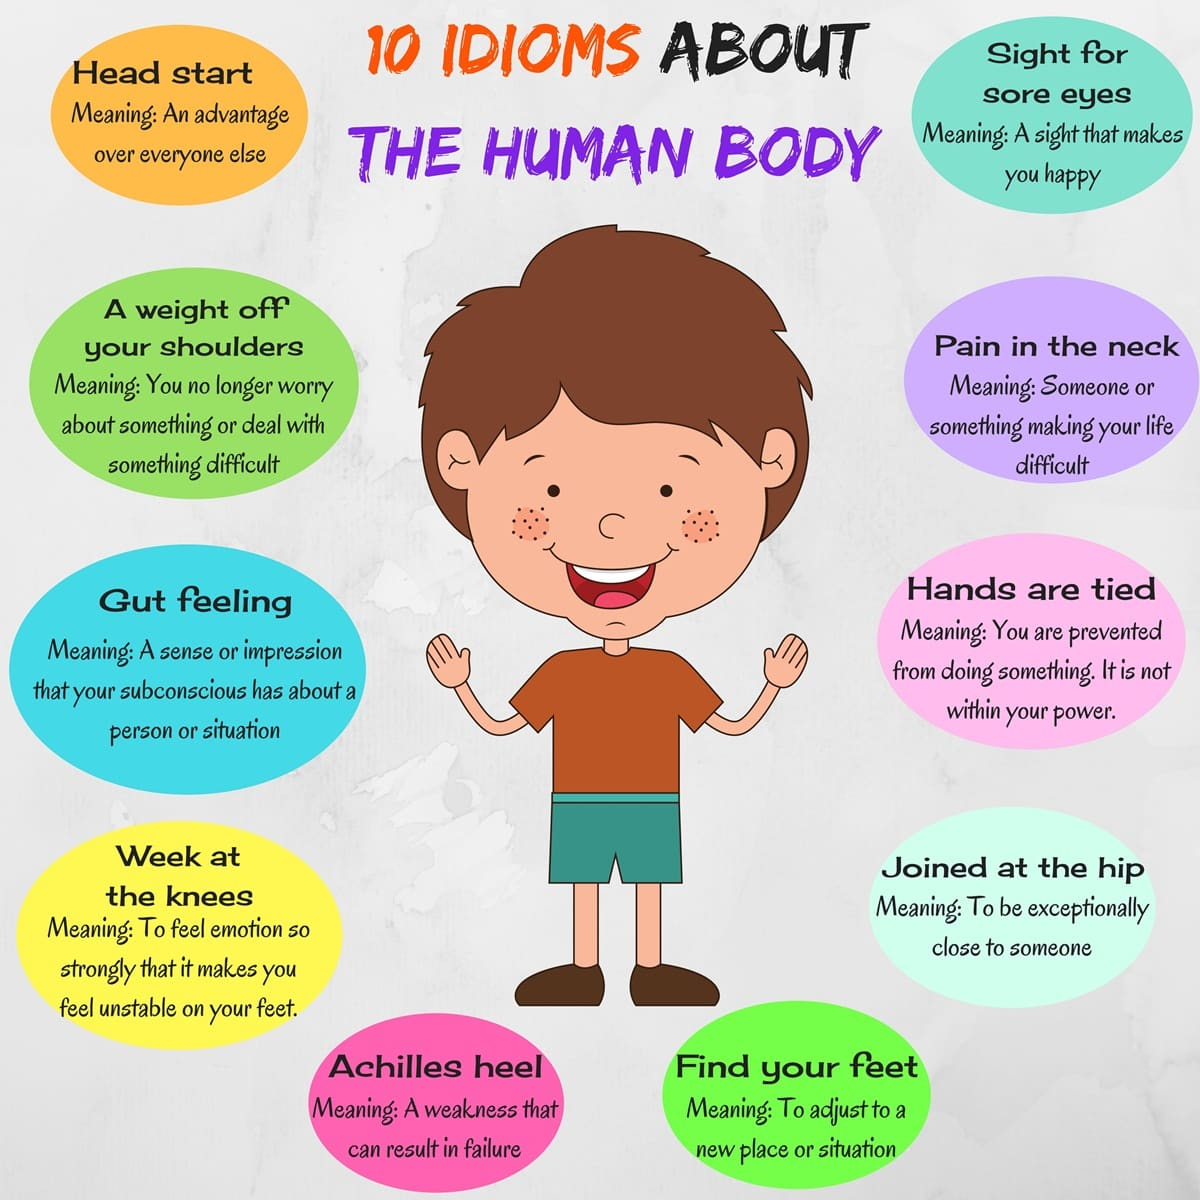 List of 120+ Popular English Idioms Arranged in Categories 13